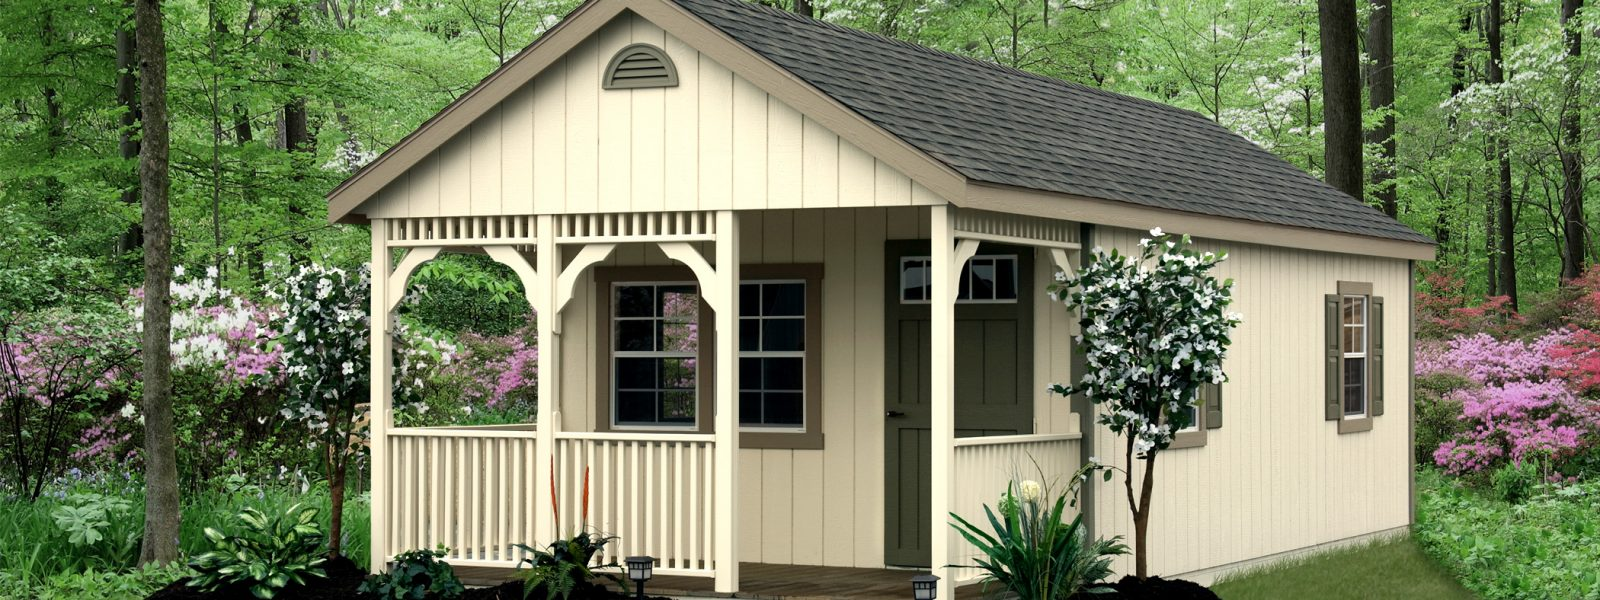 shed cabin 12x28 vacation cabin for sale near minneapolis minnesota